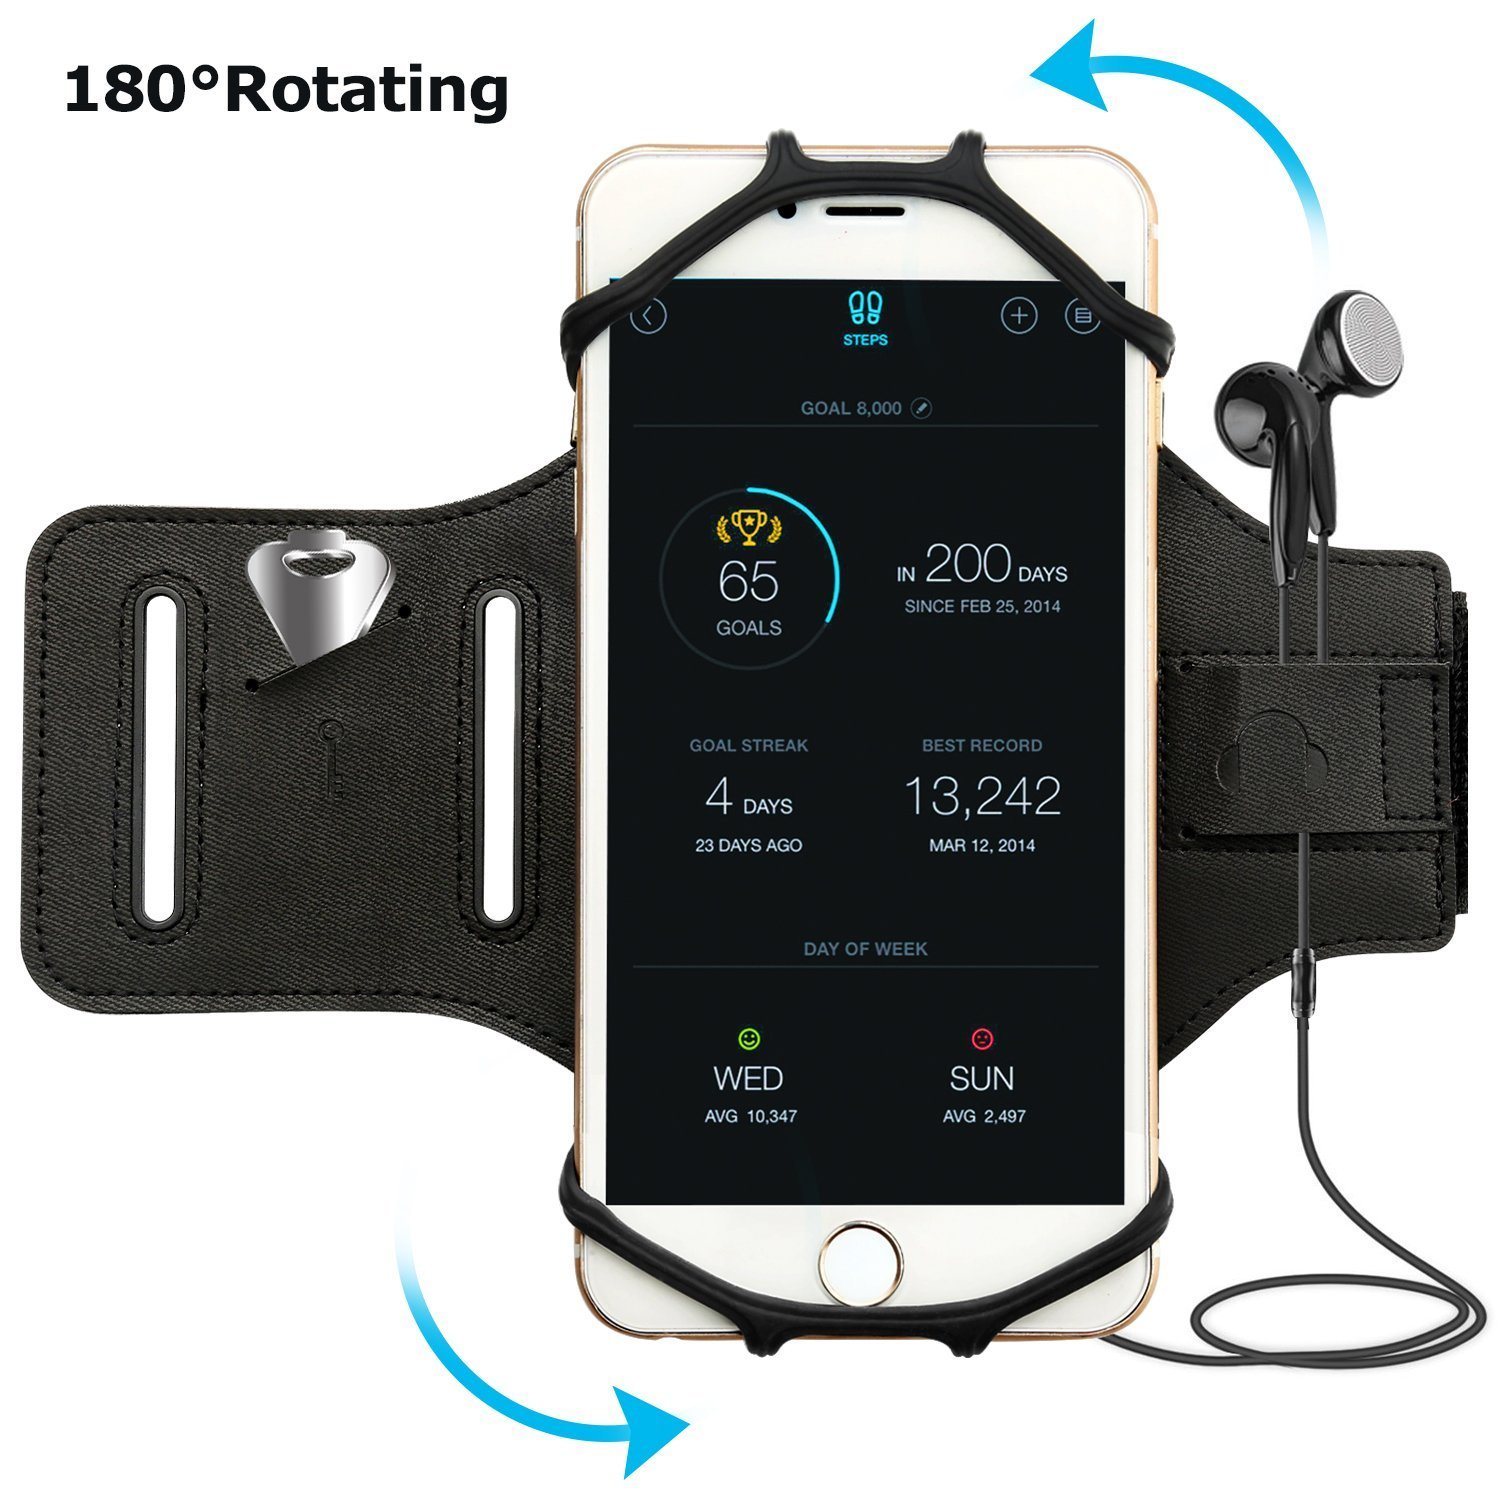 """Yahuan Running Armband for iPhone X/ 8 Plus/ 8/ 7 Plus/ 7/ 6S Plus/ 6S/ 6/ 5S/ SE,180 Rotatable Sports Workout Armband Phone Holder for SAMSUNG Galaxy S8/ MOTO Z and Other Phone from 4"""" to 5.8"""""""